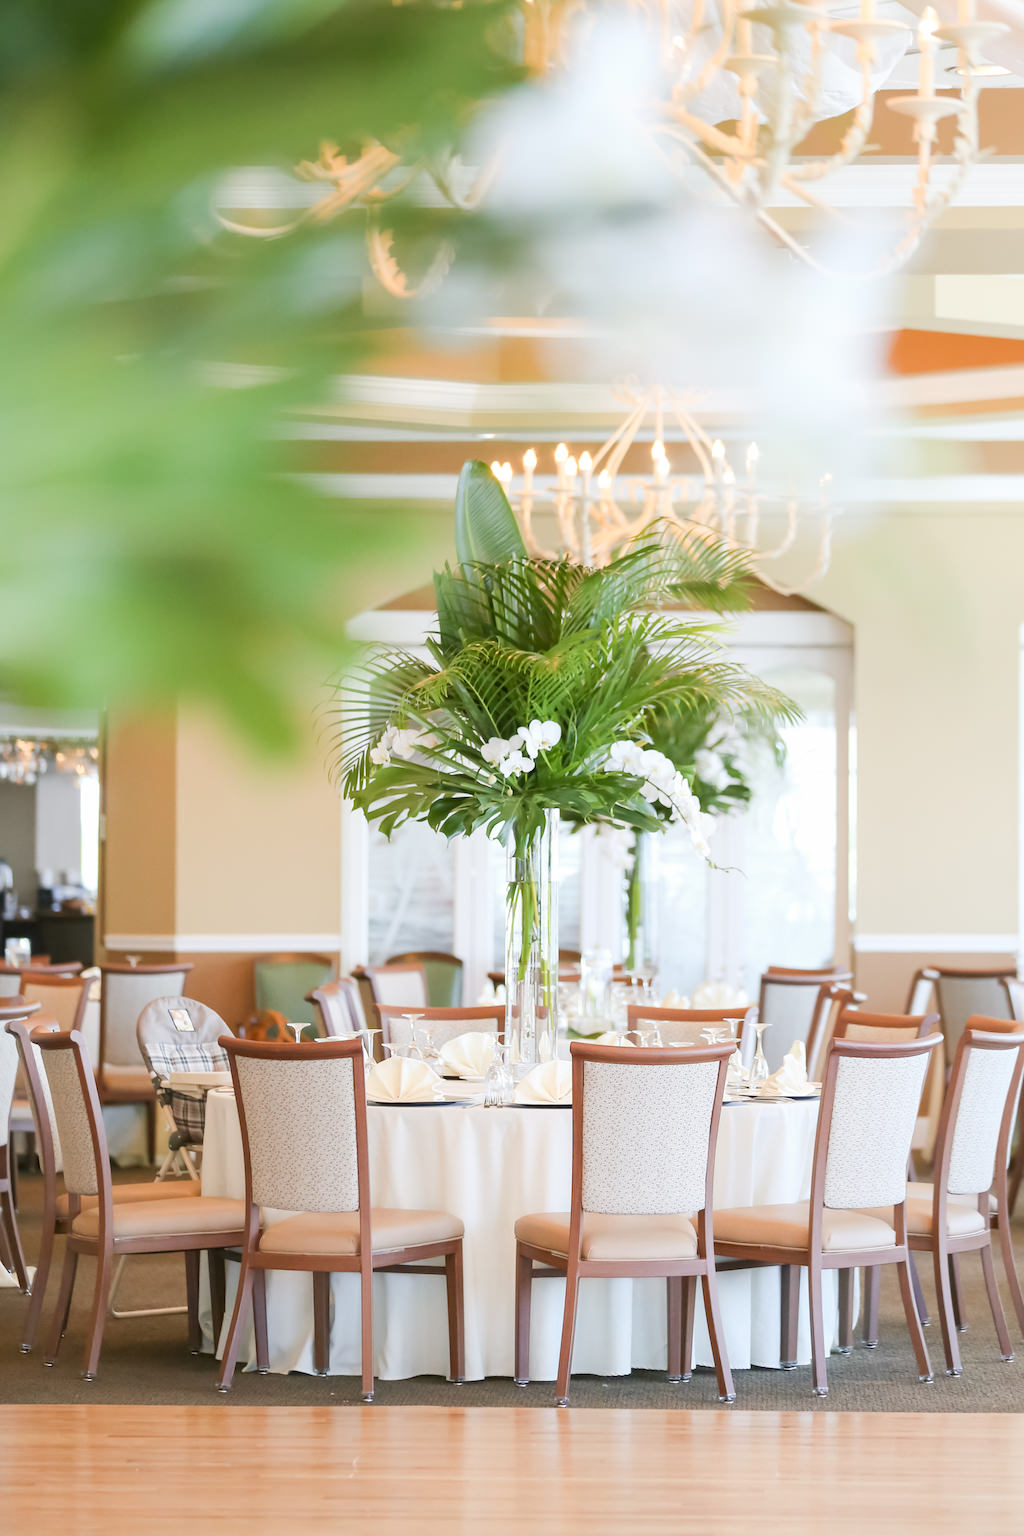 Tropical, Florida Beach Elegant Inspired Ballroom Wedding Reception Decor, Round Tables with Tall Glass Vase, White Florals and Palm Leaf Centerpiece | Photographer LifeLong Photography Studios | St. Pete Beach Waterfront Wedding Venue Isla Del Sol Yacht and Country Club